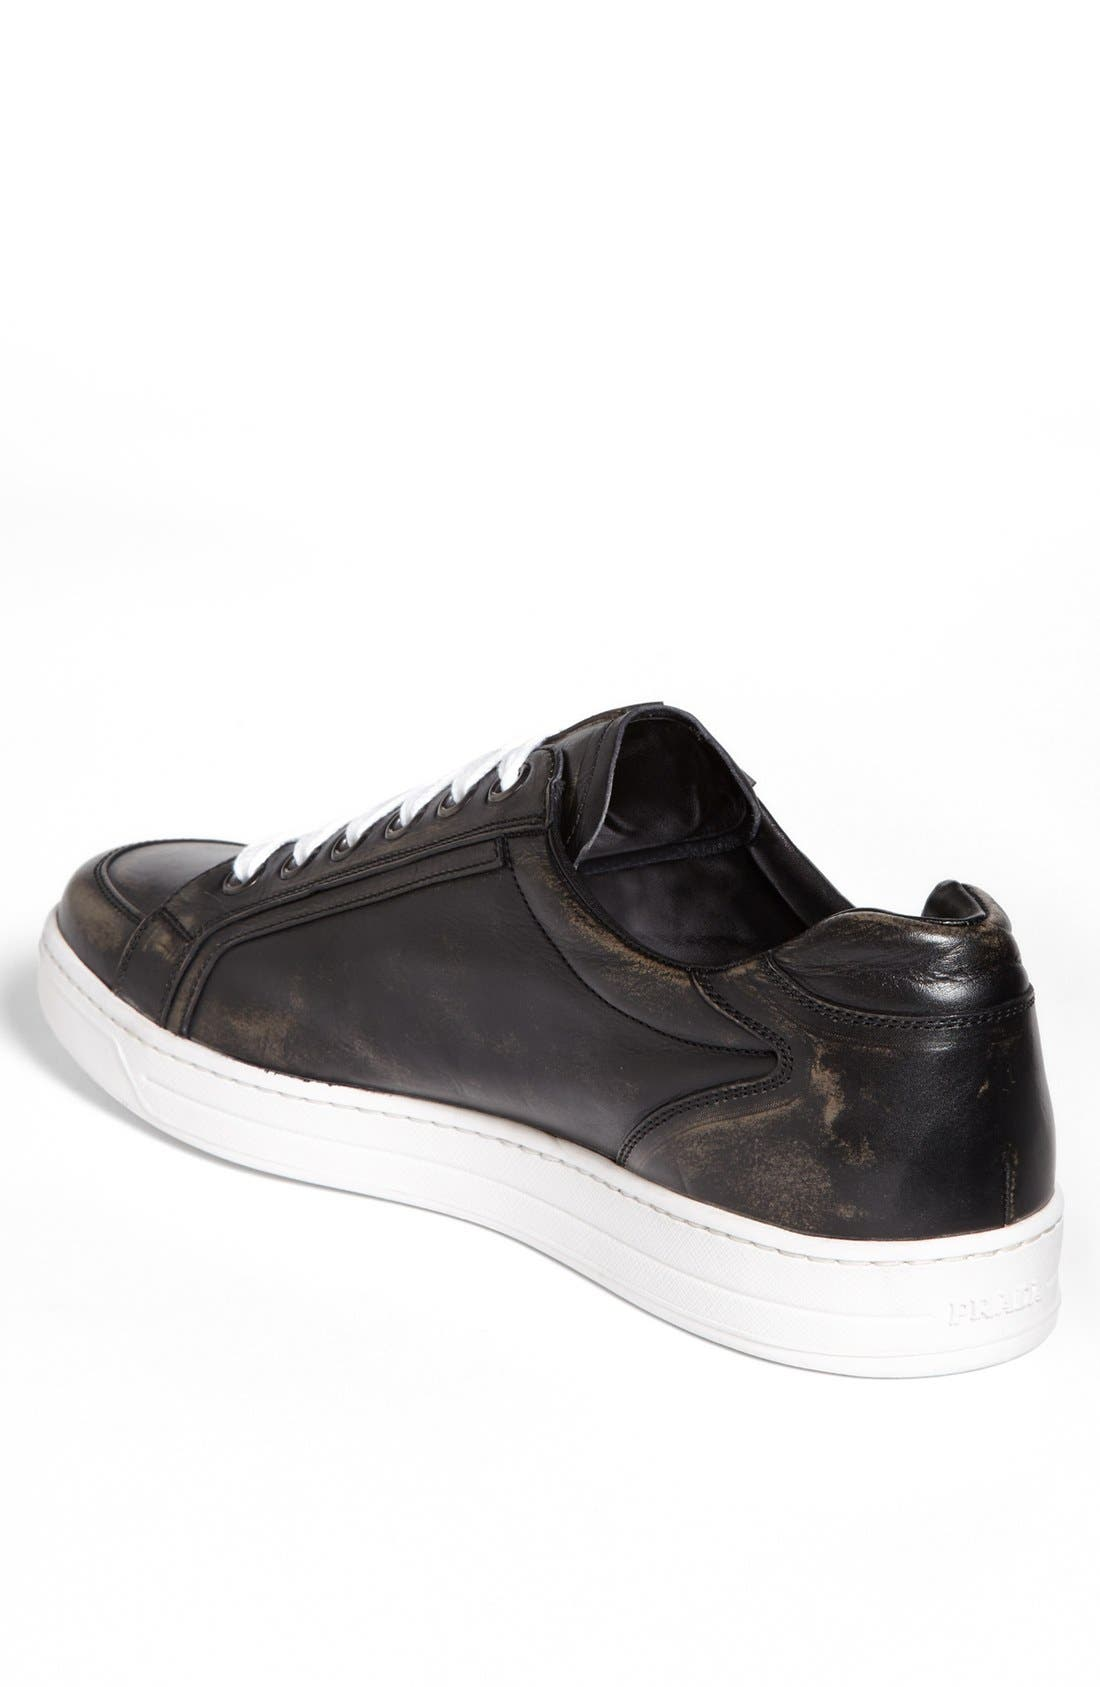 Alternate Image 2  - Prada 'Avenue' Sneaker